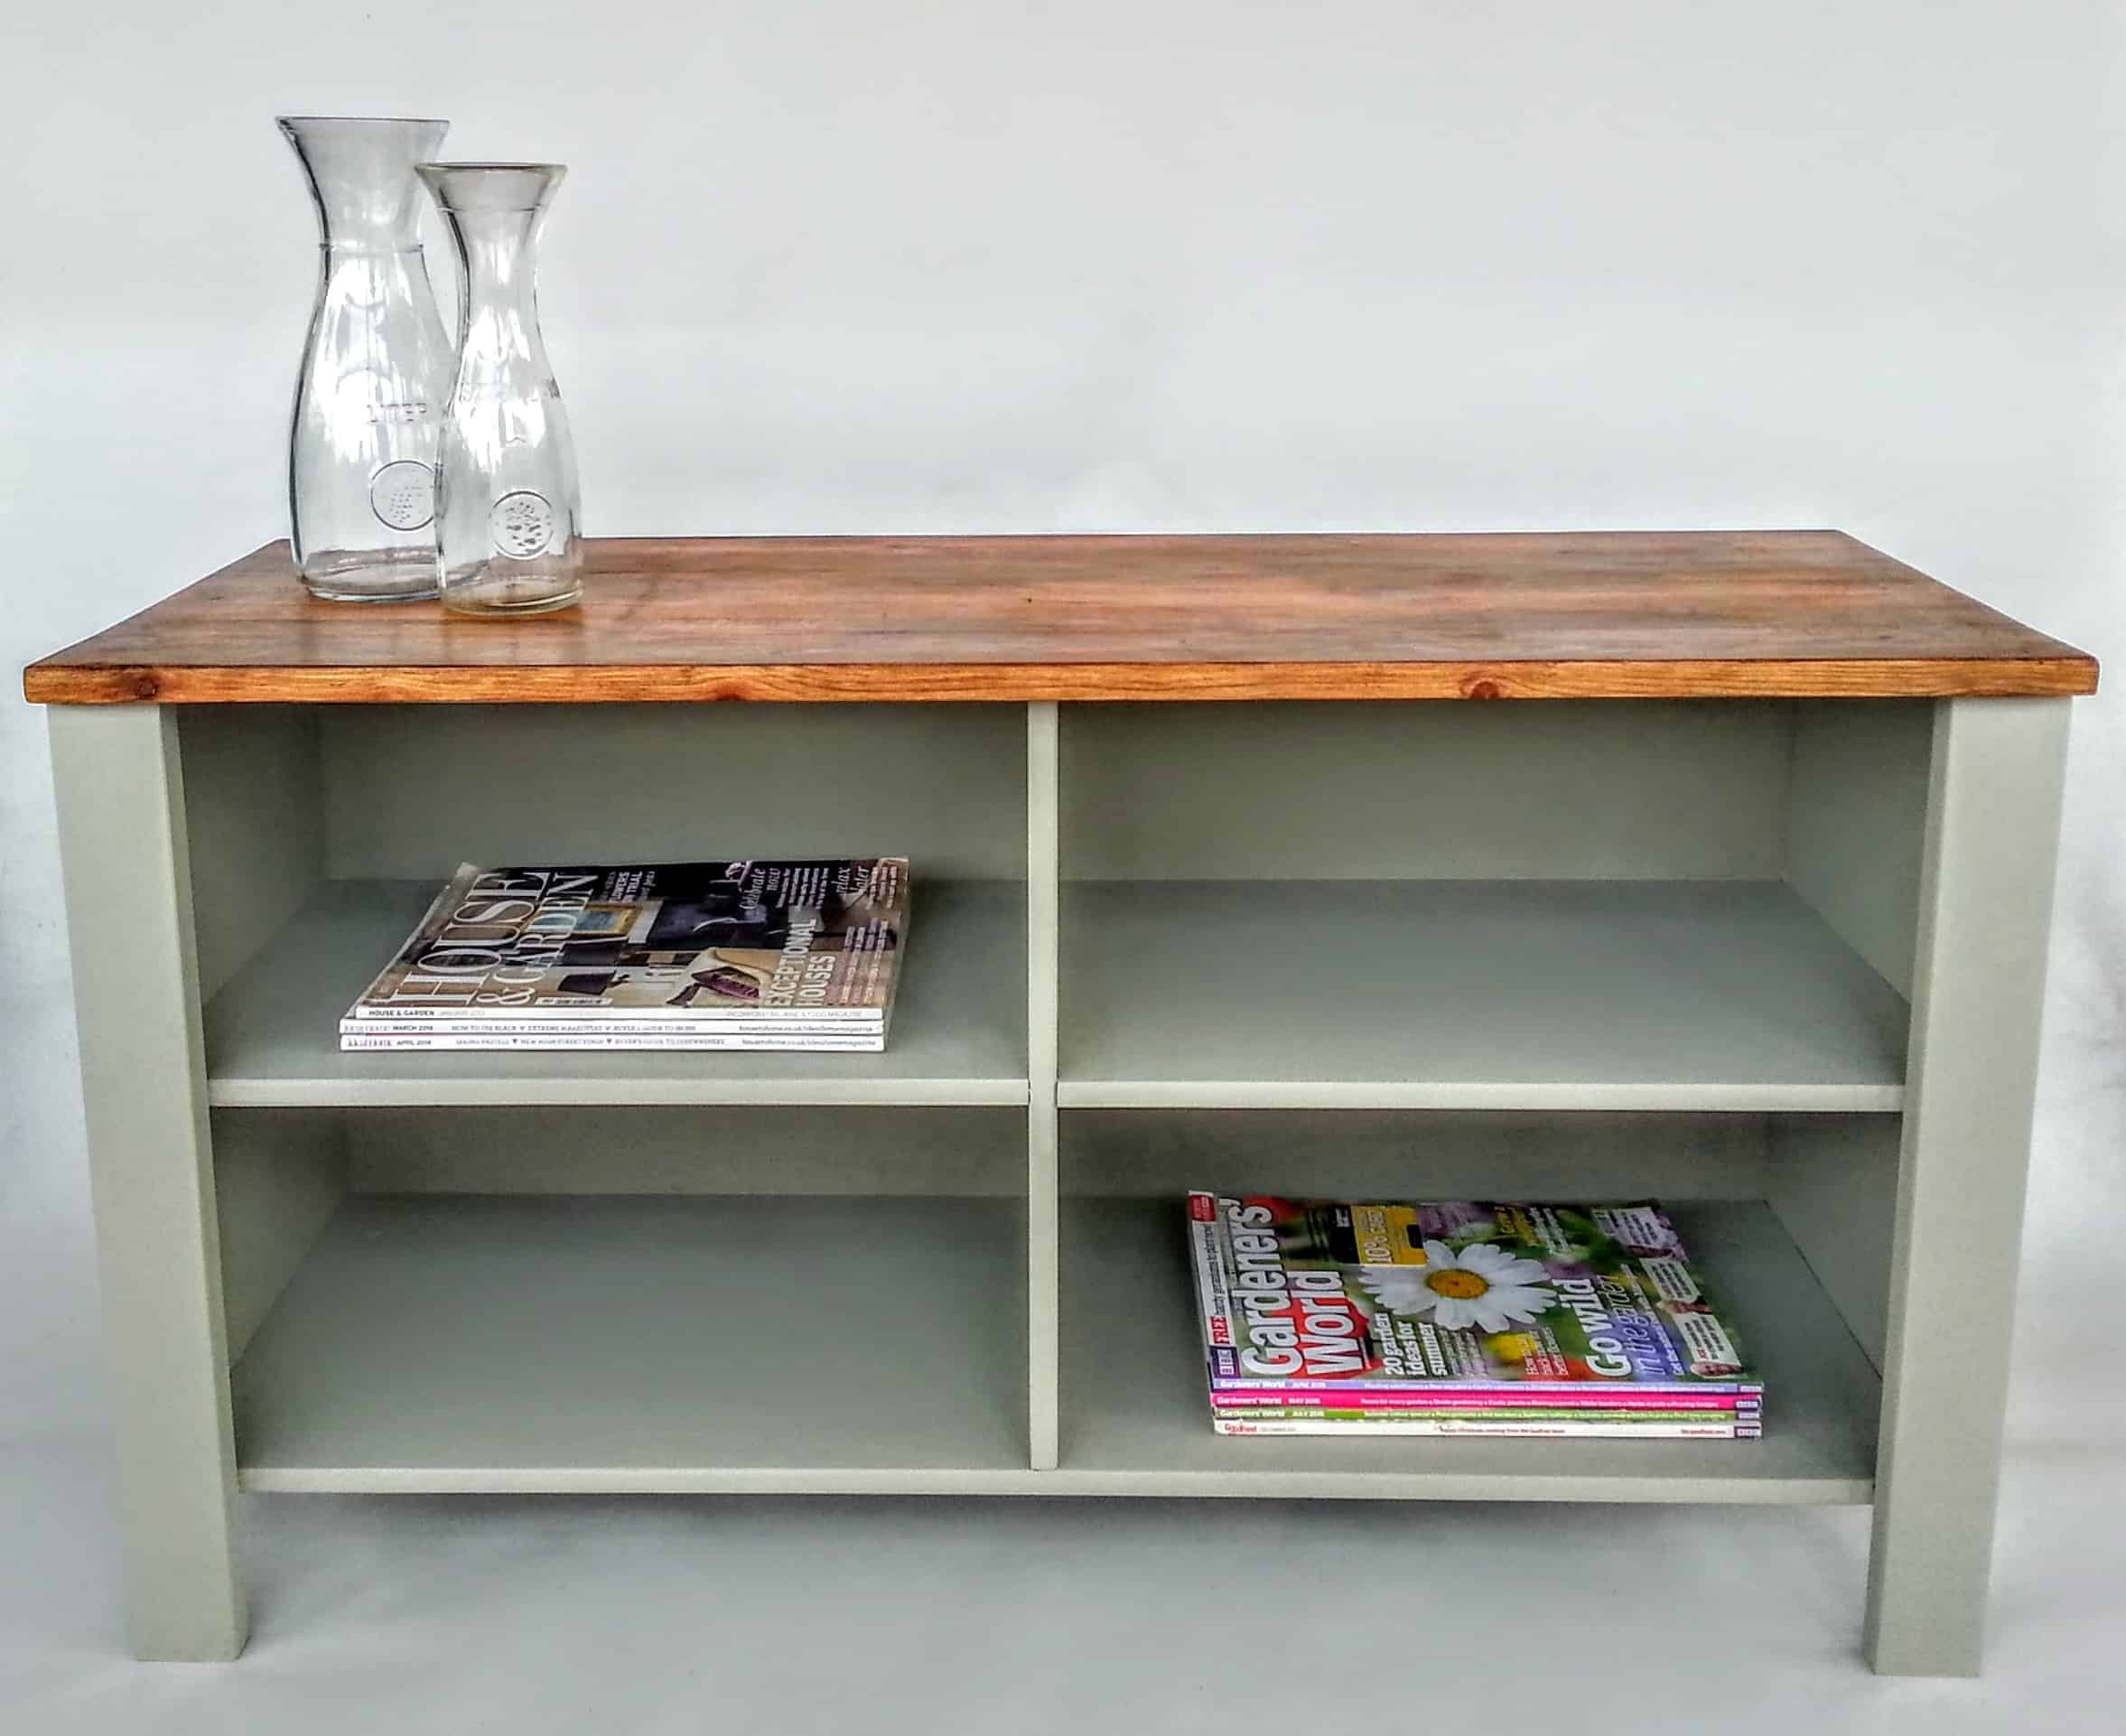 Ebay Bargain Pine TV Stand: A Painting Project